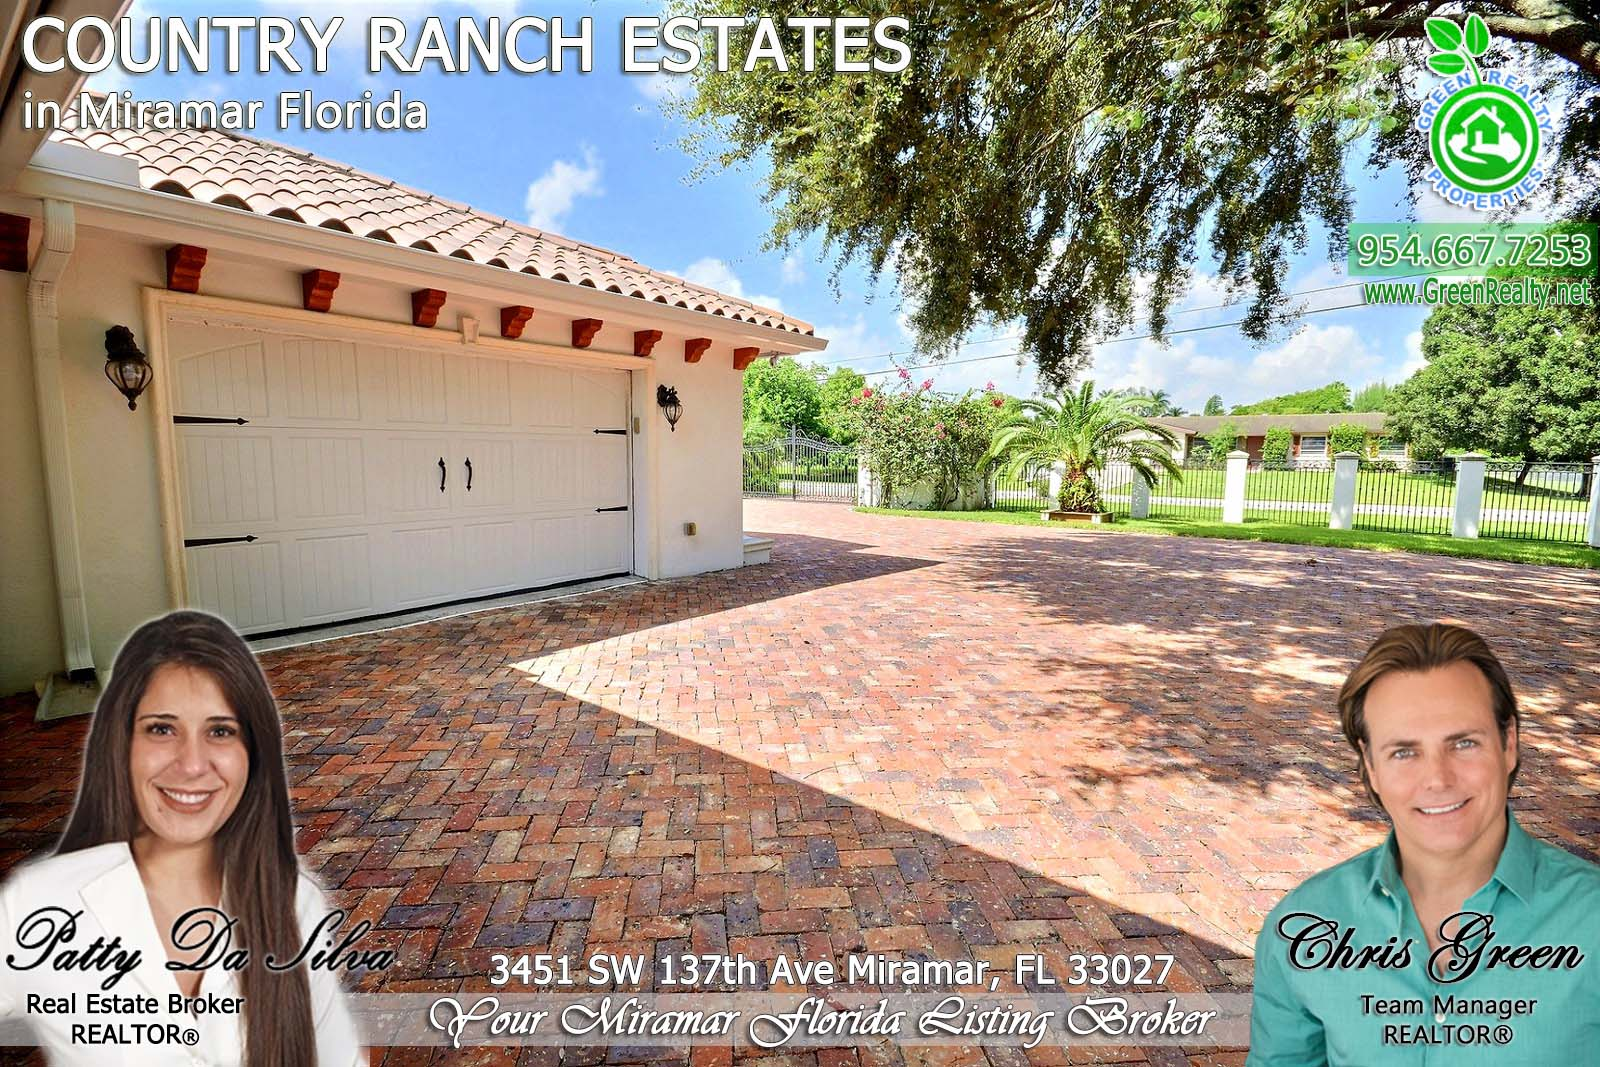 49 Homes For Sale in County Ranch Estates